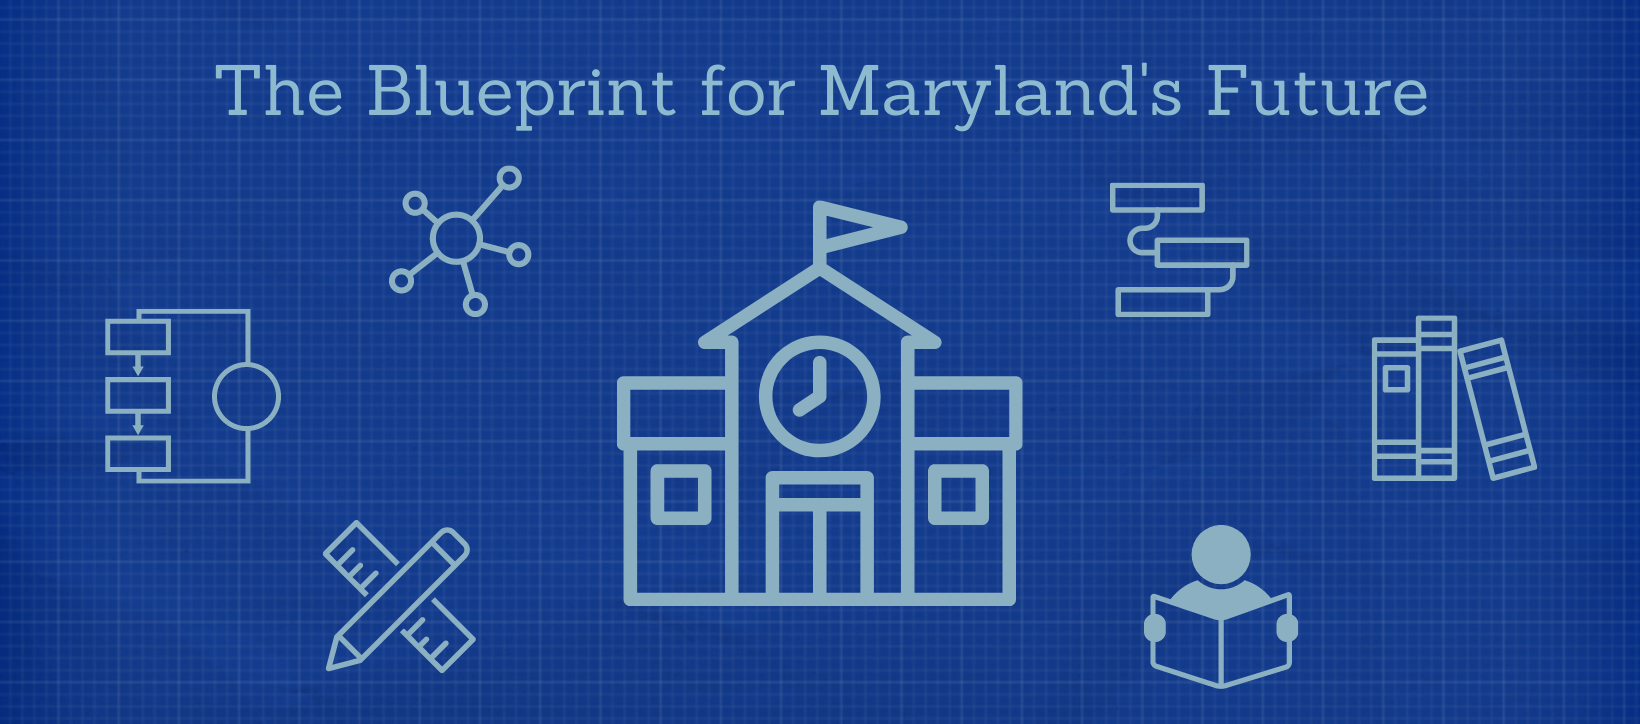 Copy of The Blueprint for Maryland's Future